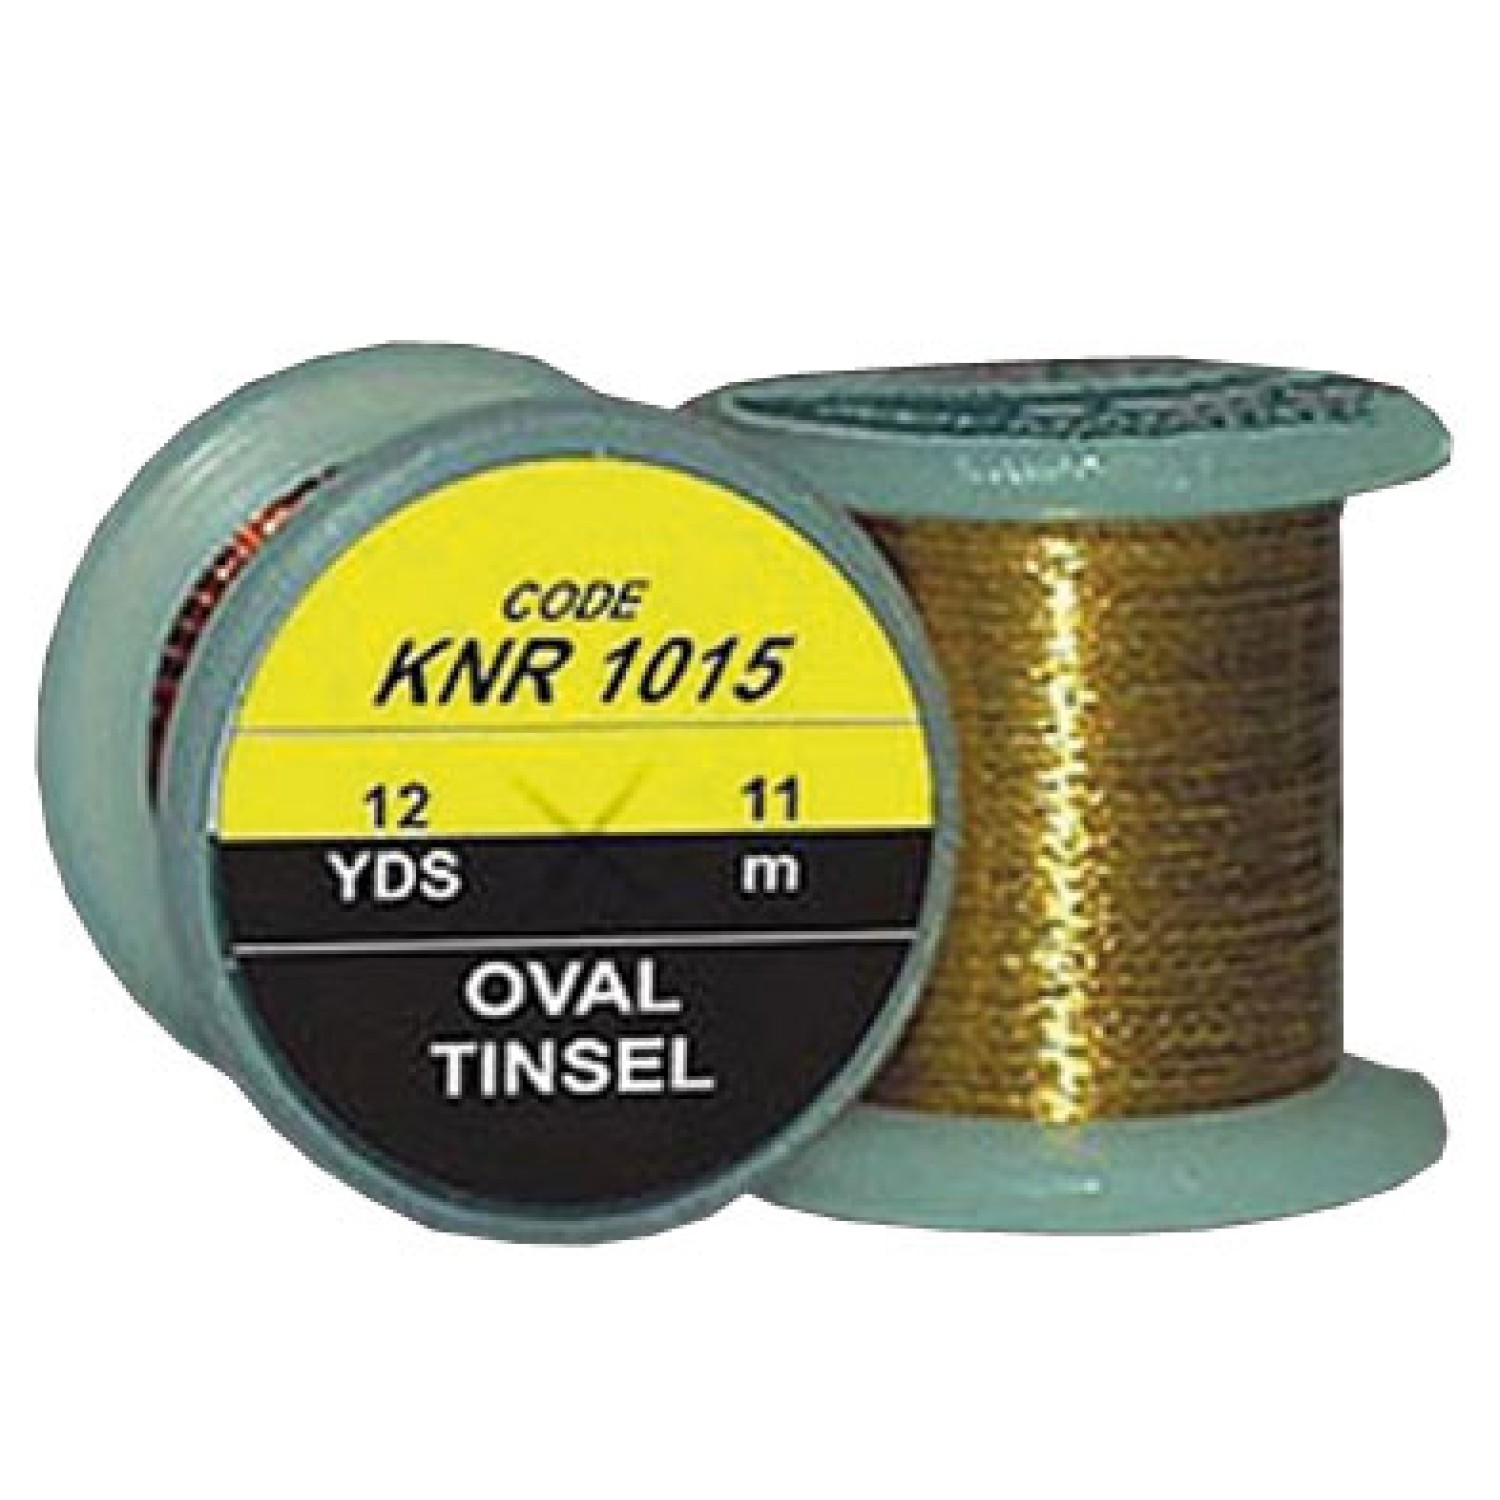 F+M Oval Tinsel, 11m